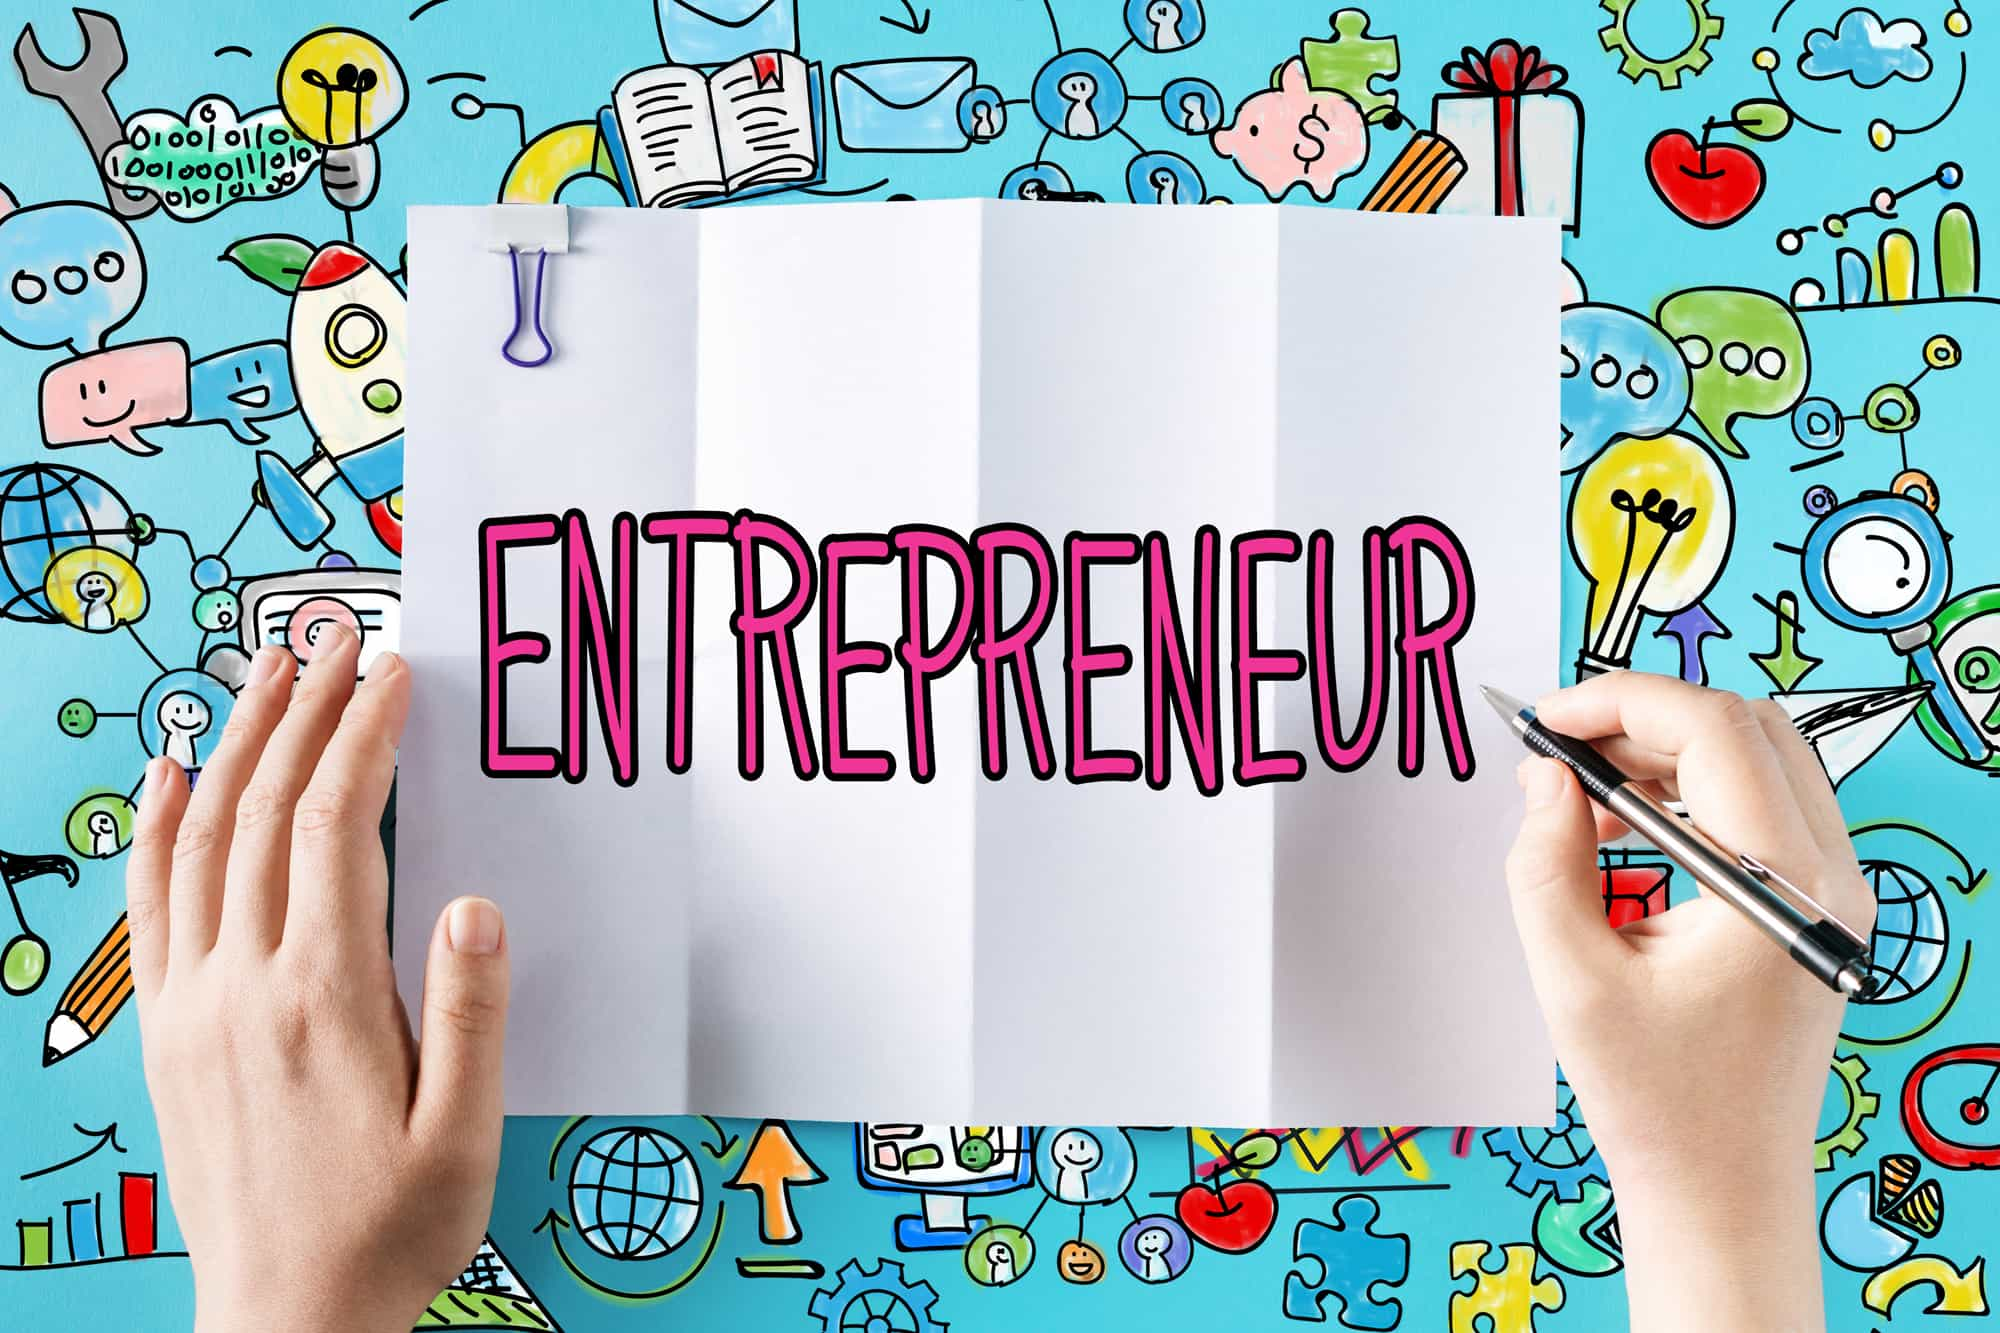 Entrepreneur text with hands and colorful illustrations